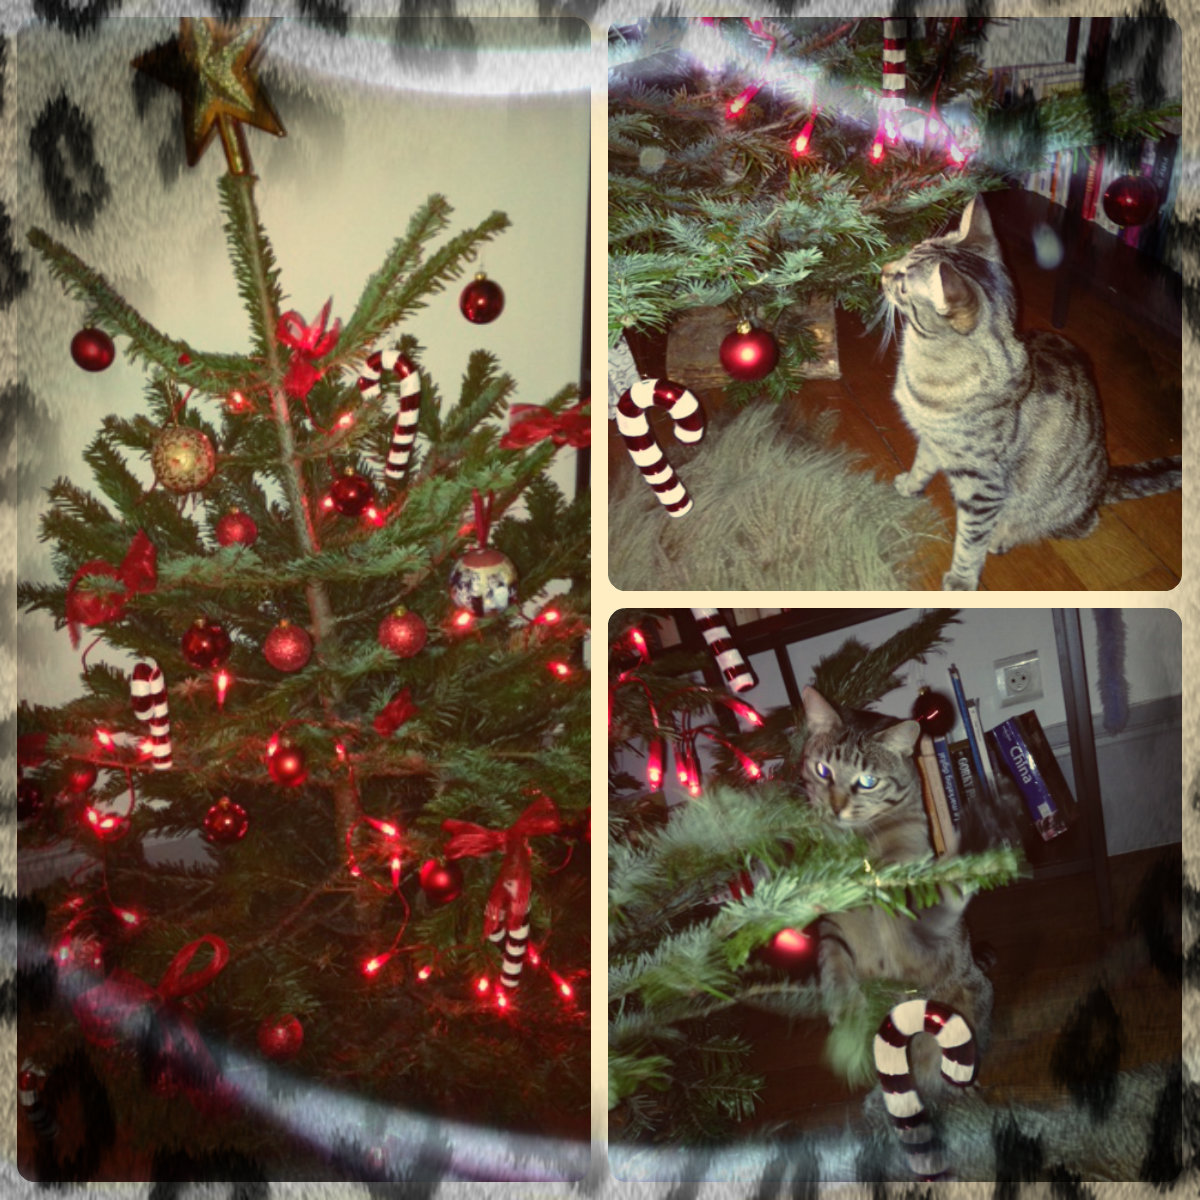 Putting Up A Christmas Tree With A Cat In The House!